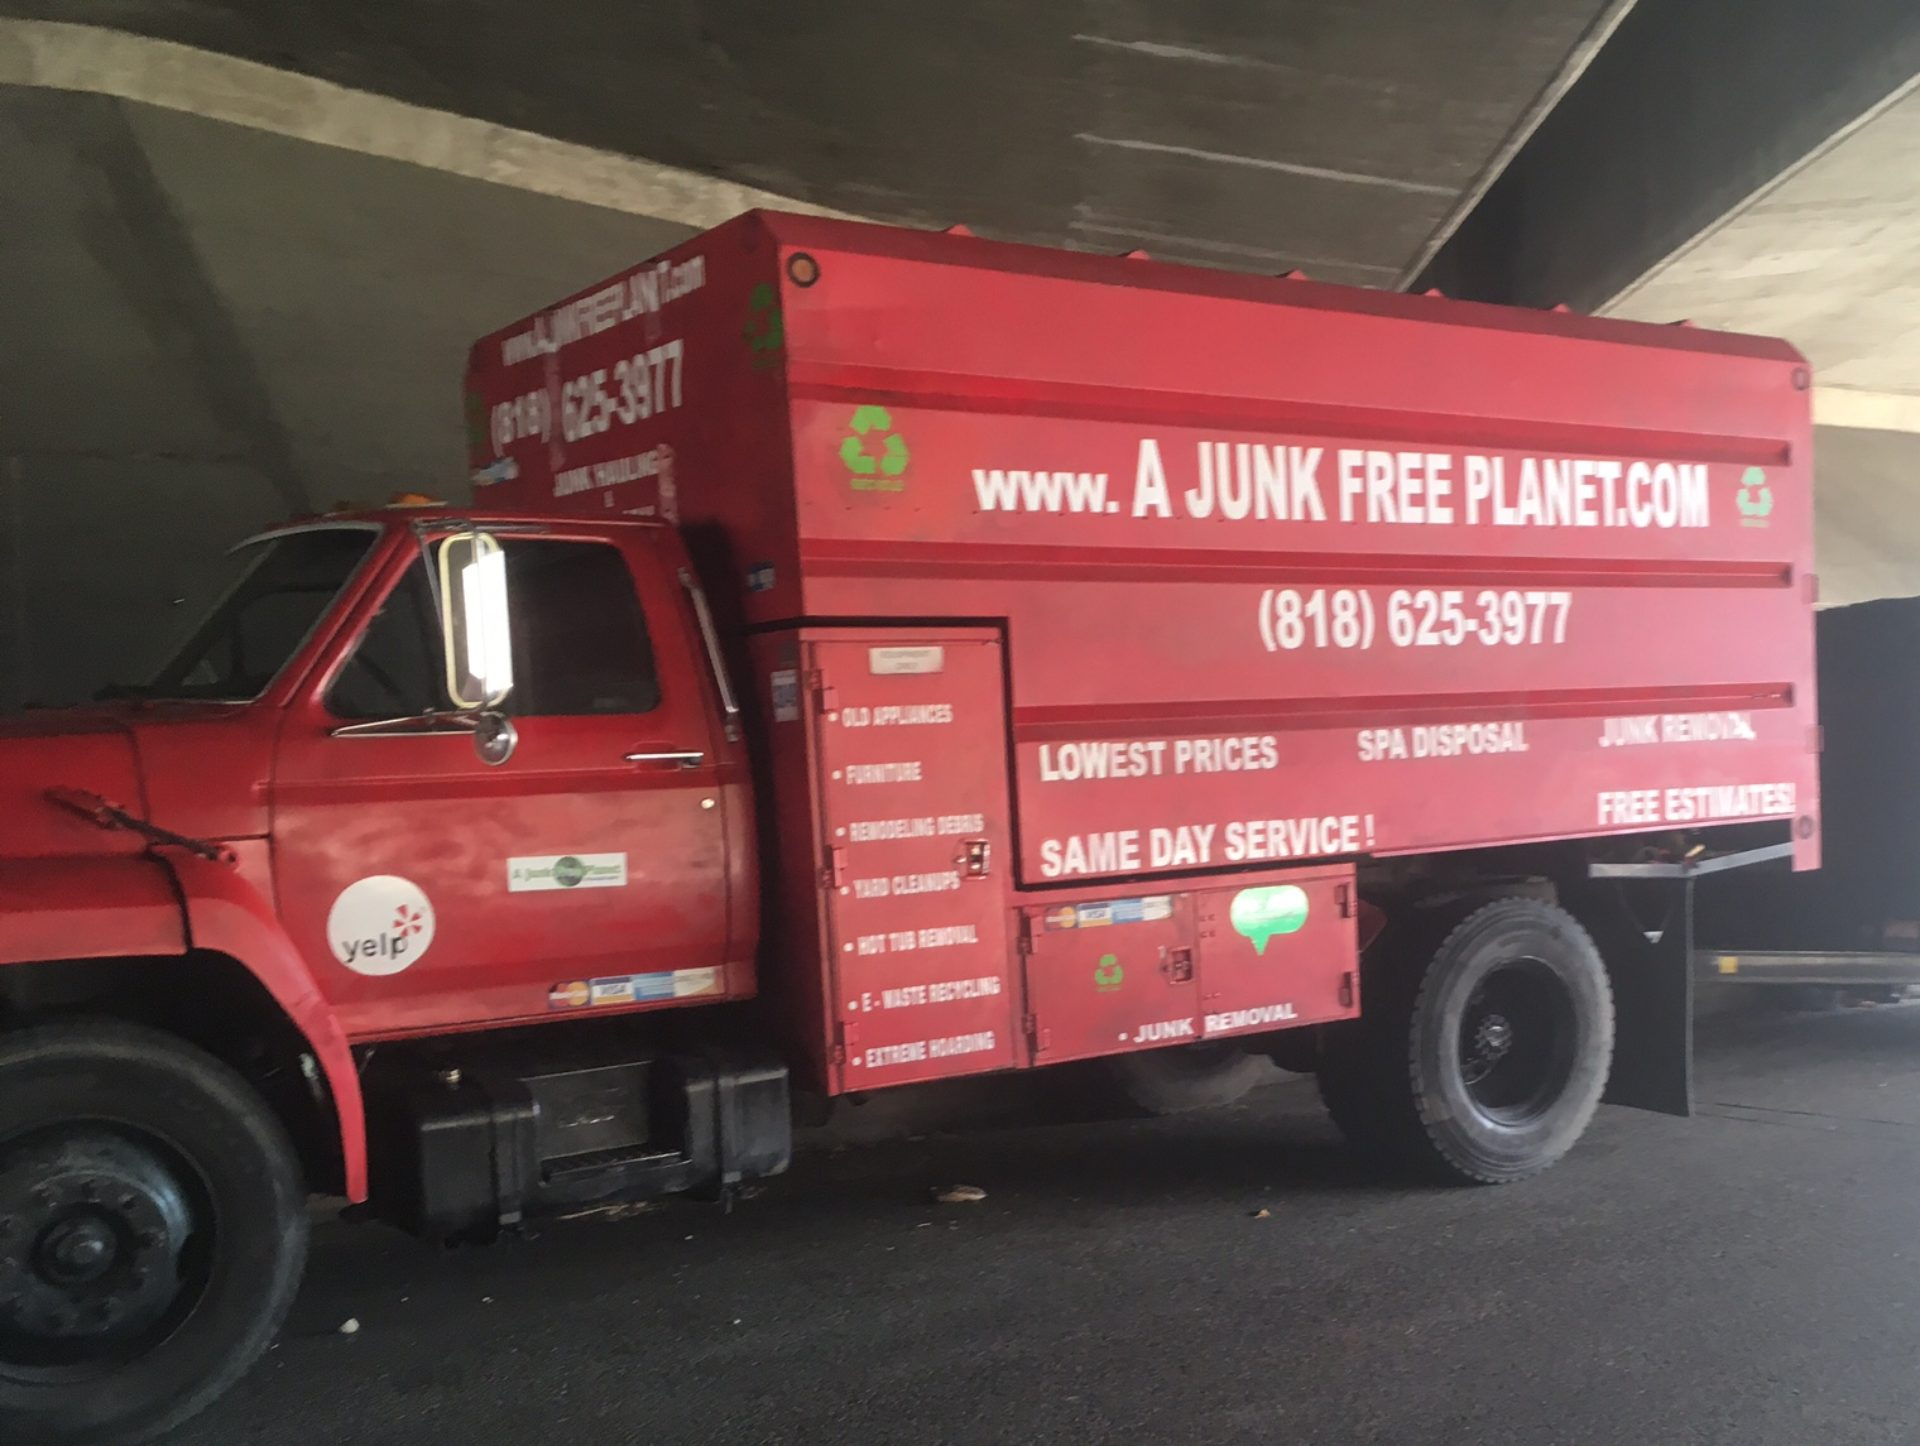 A JUNK FREE PLANET  LOCAL JUNK HAULING  LOCAL JUNK REMOVAL DEBRIS DISPOSAL